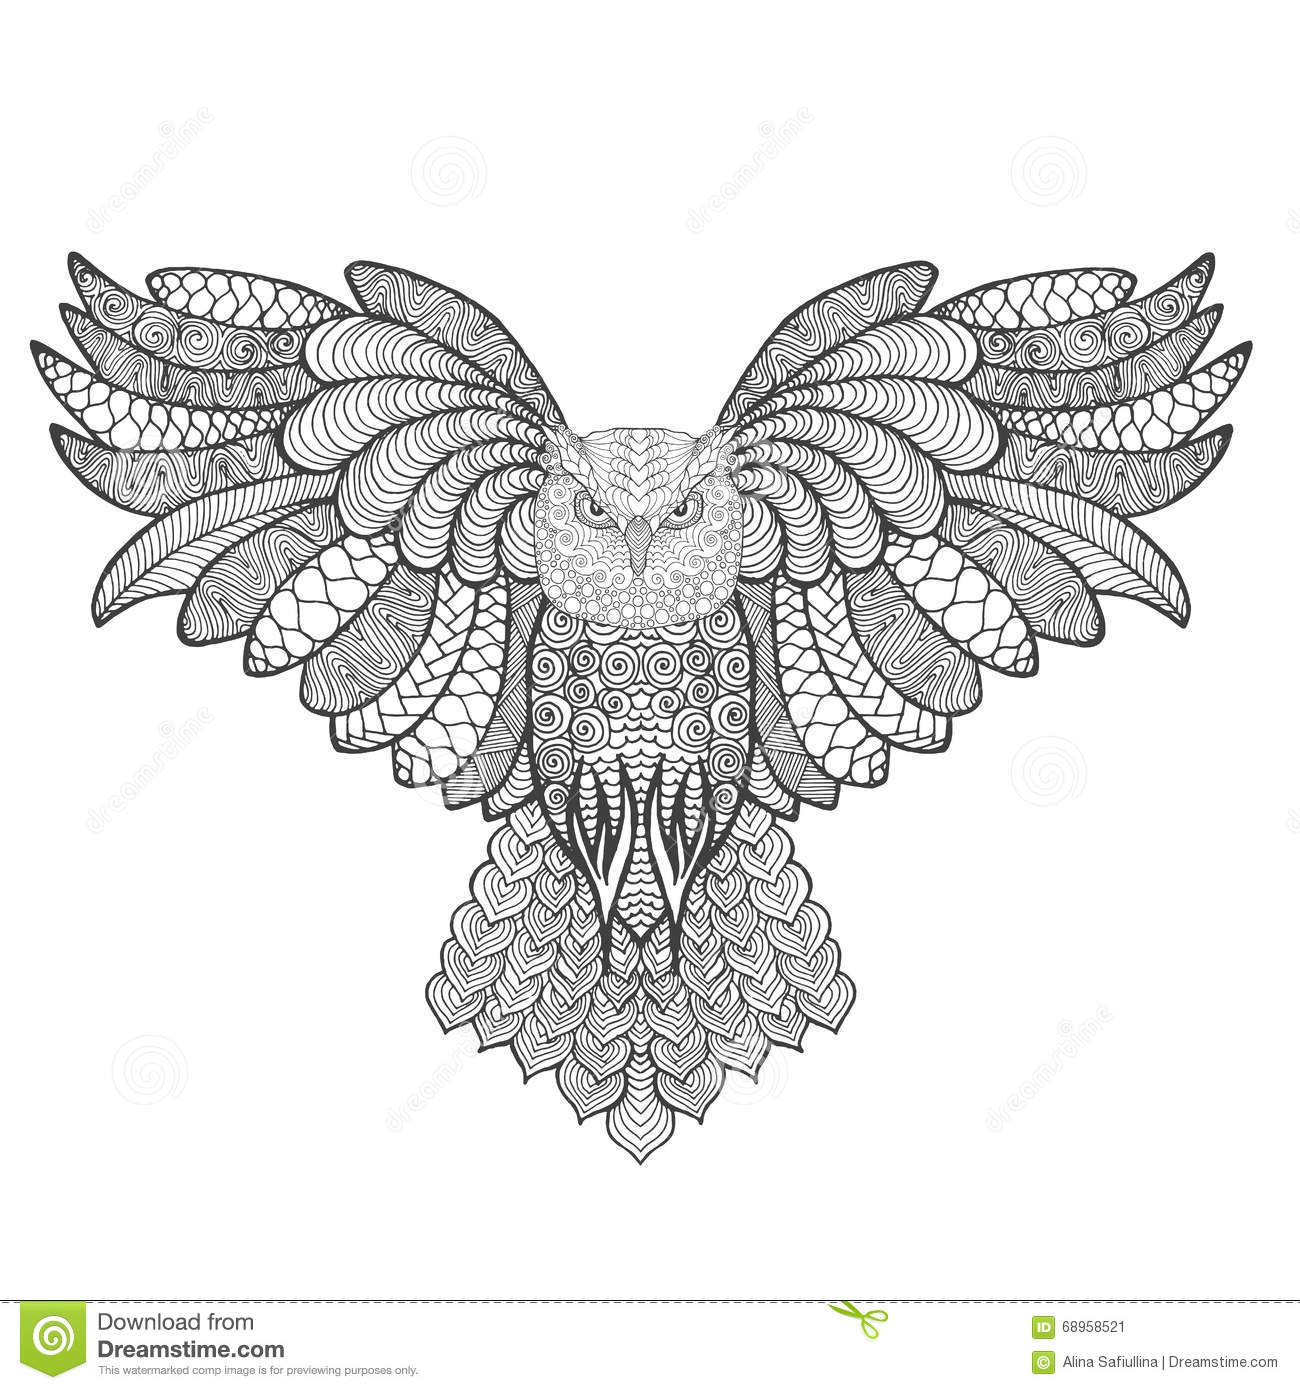 Eagle-owl coloring #6, Download drawings